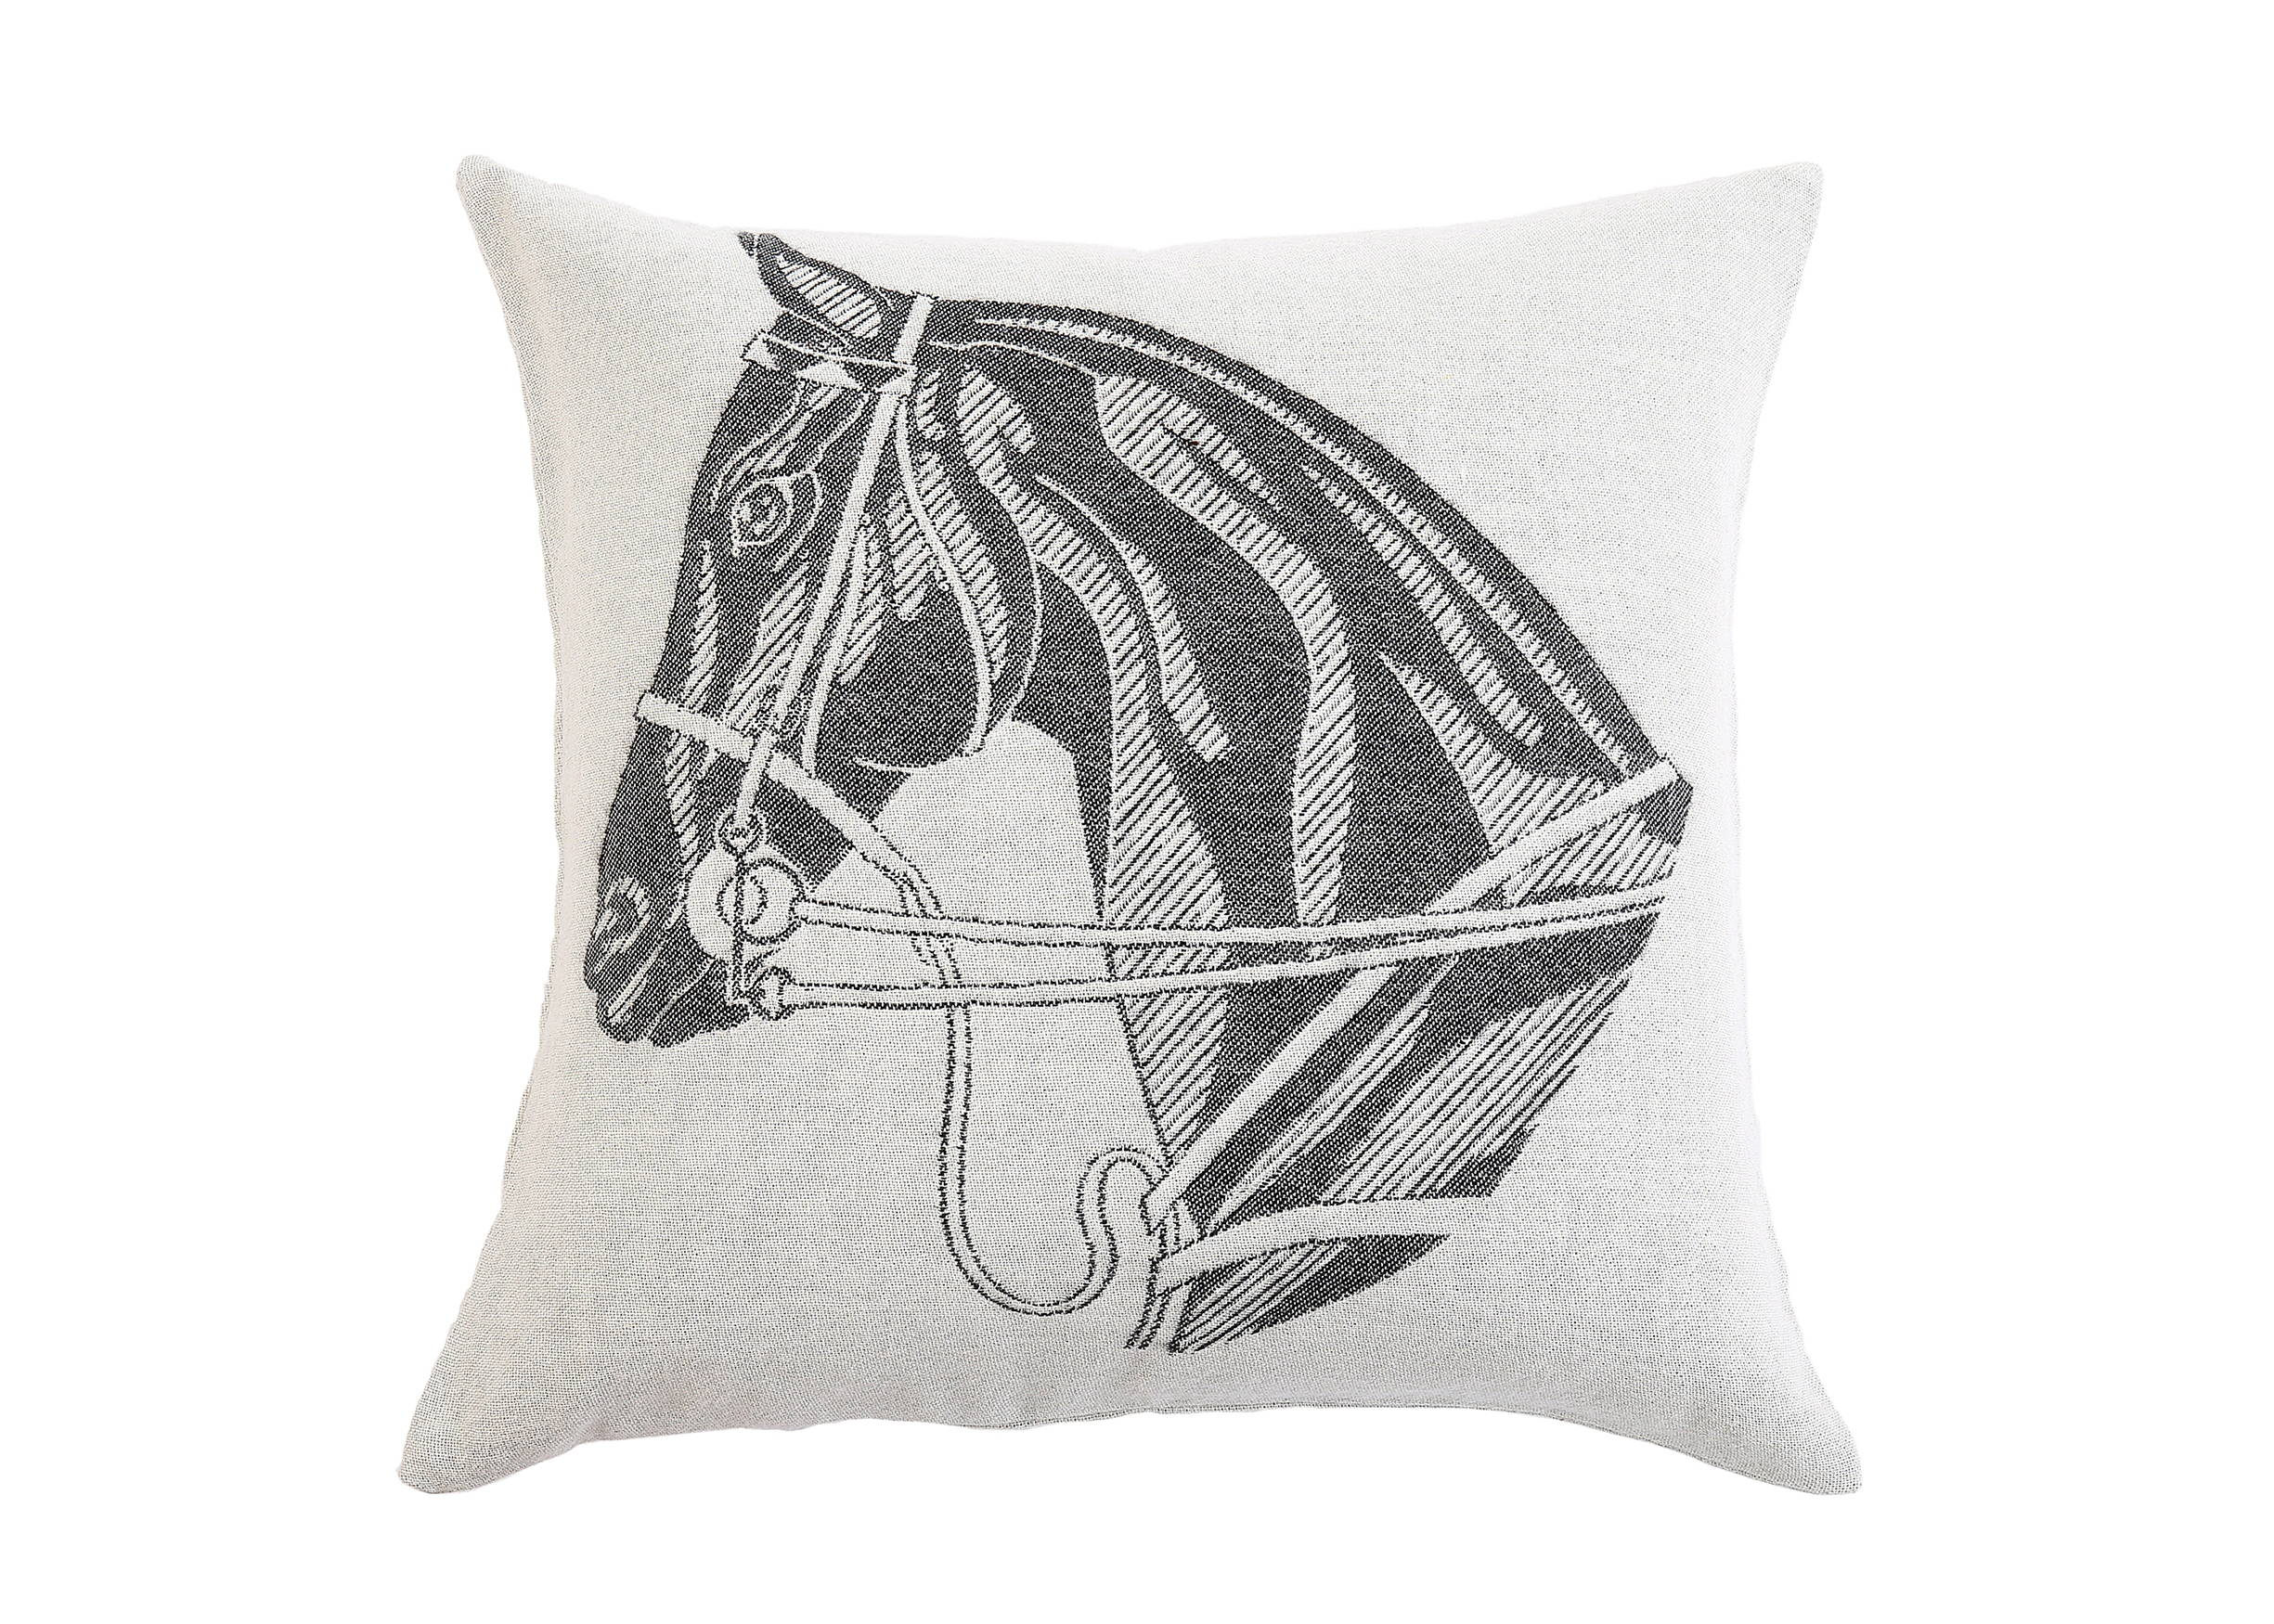 Equestrian Jacquard-loomed Alpaca Horse Head Pillow in Charcoal - Stick & Ball